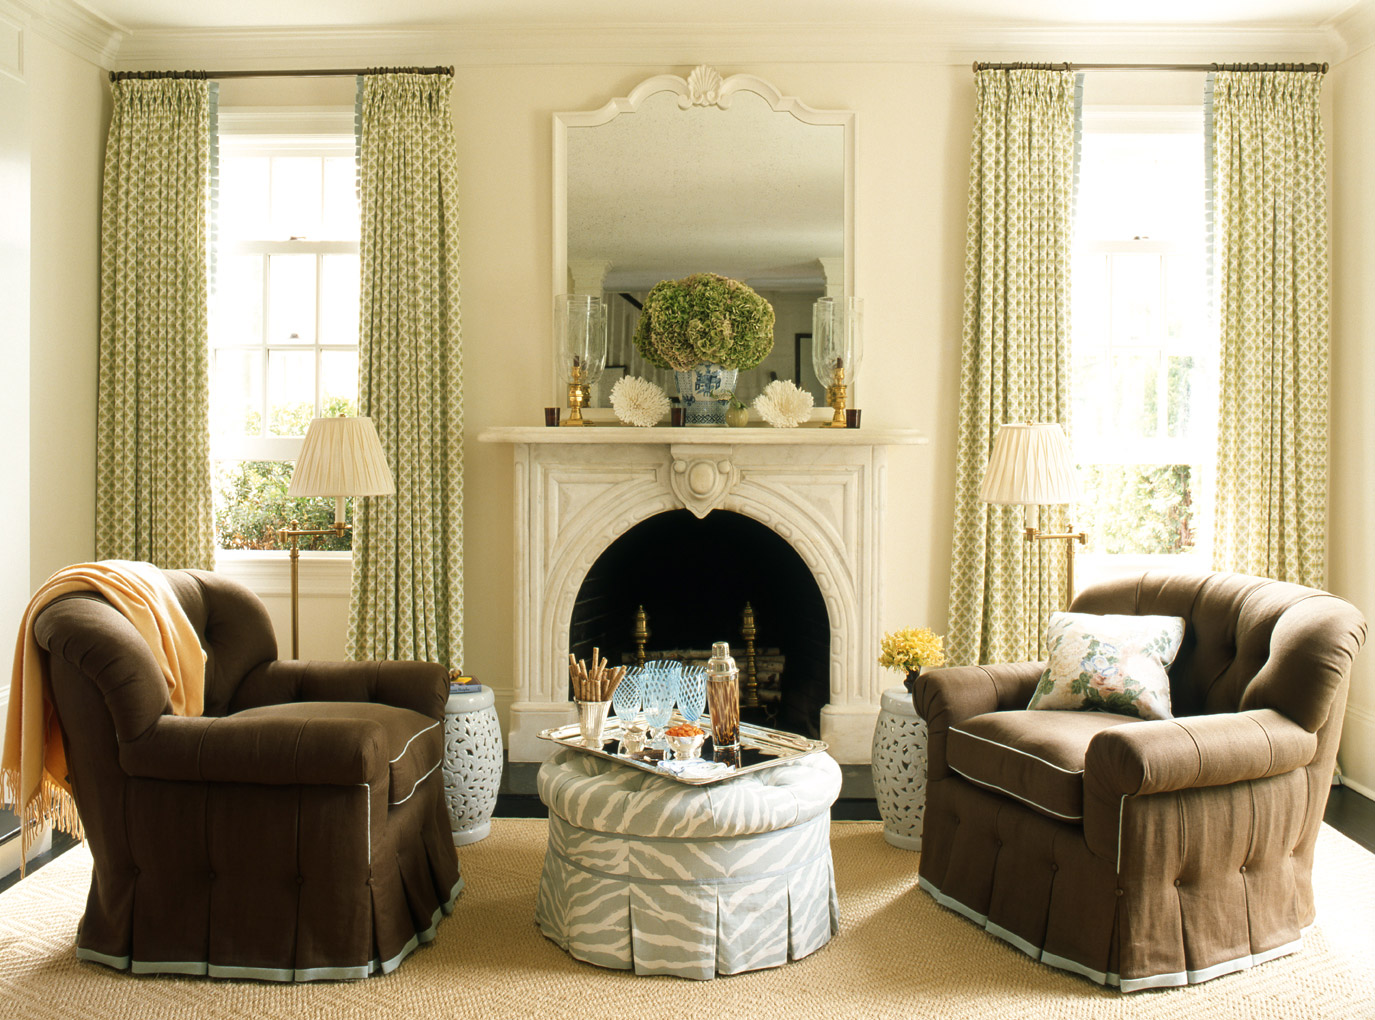 How to decorate series finding your decorating style for Classic decoration home